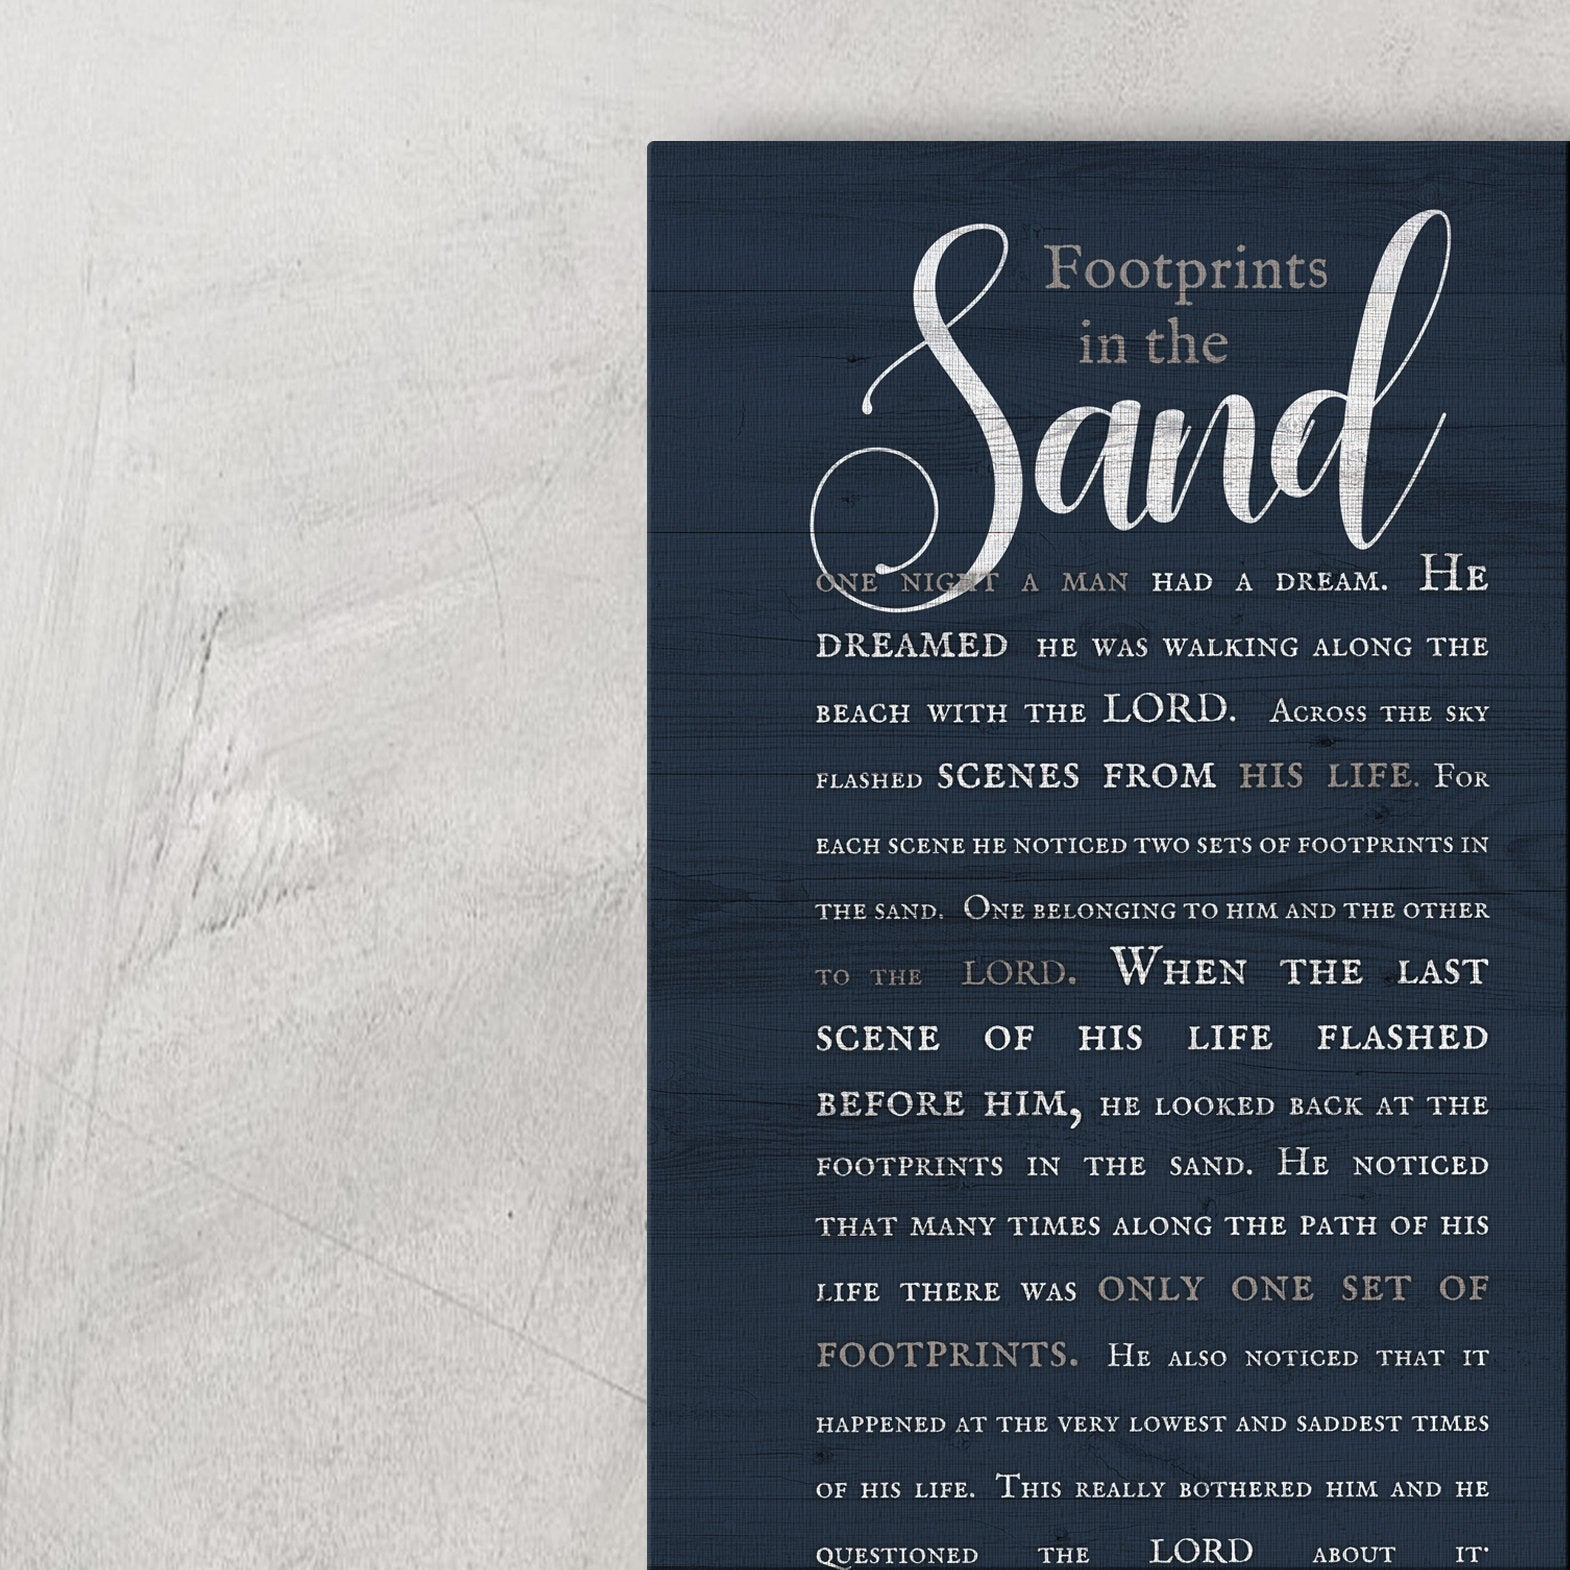 Housewarming Gift for Beach House, Footprints in the Sand Poem on Canvas, Large canvas wall decor, Meaningful gift for best friend, Nautical